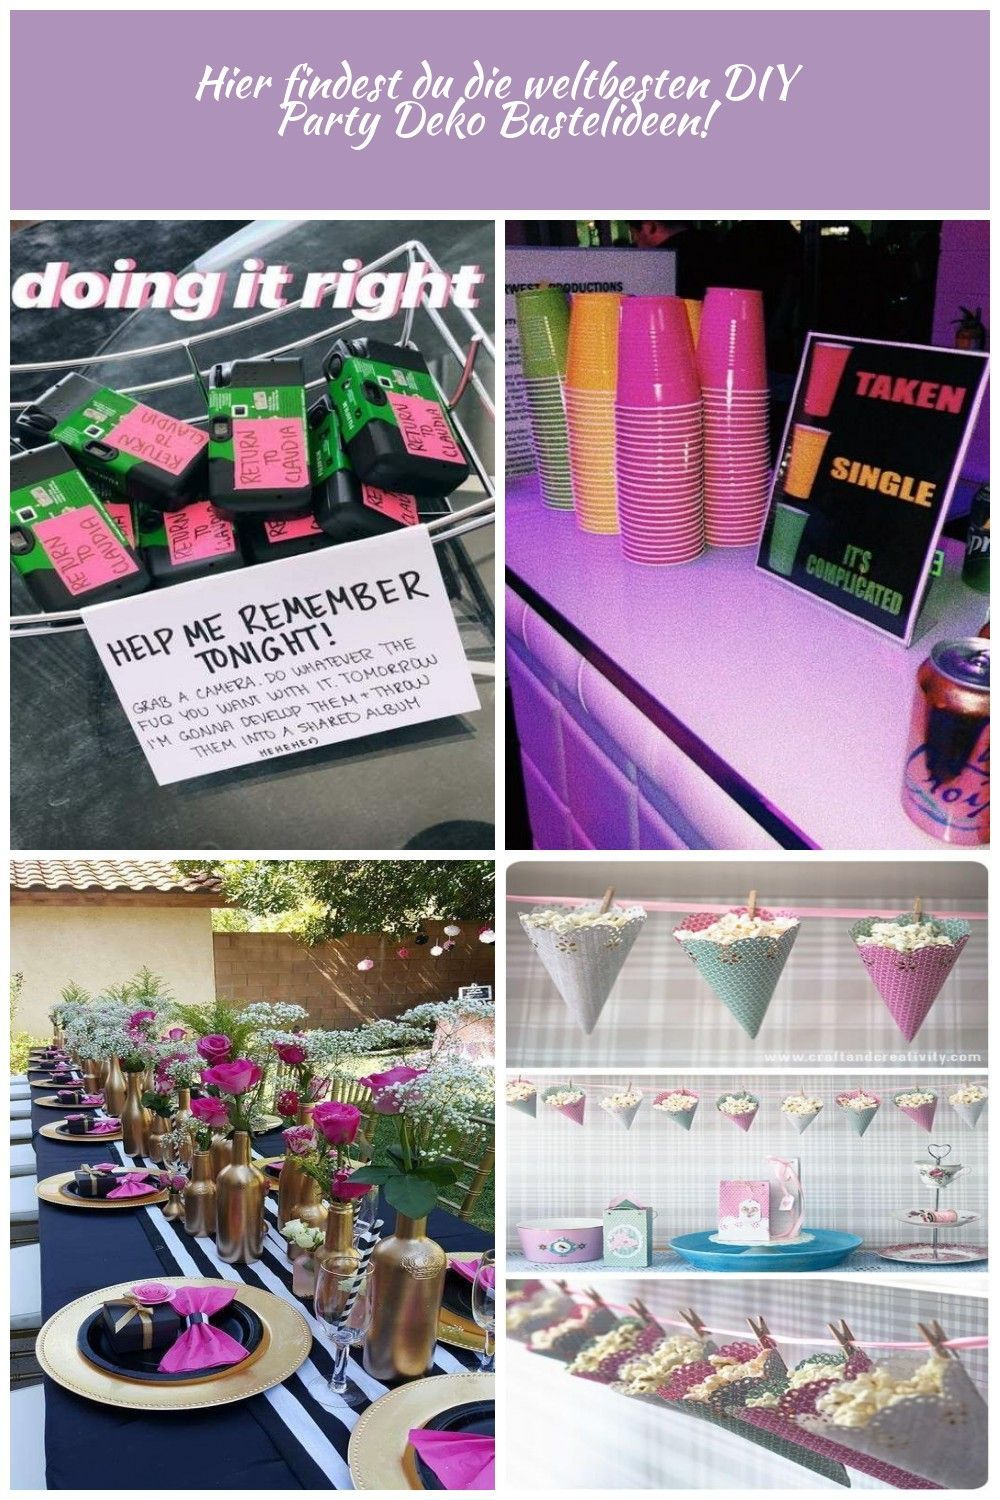 19 Trendy ideas for party ideas 21st birthday signs #party #birthday Party Ideen 19 Trendy ideas for party ideas 21st birthday signs #21stbirthdaysigns 19 Trendy ideas for party ideas 21st birthday signs #party #birthday Party Ideen 19 Trendy ideas for party ideas 21st birthday signs #21stbirthdaysigns